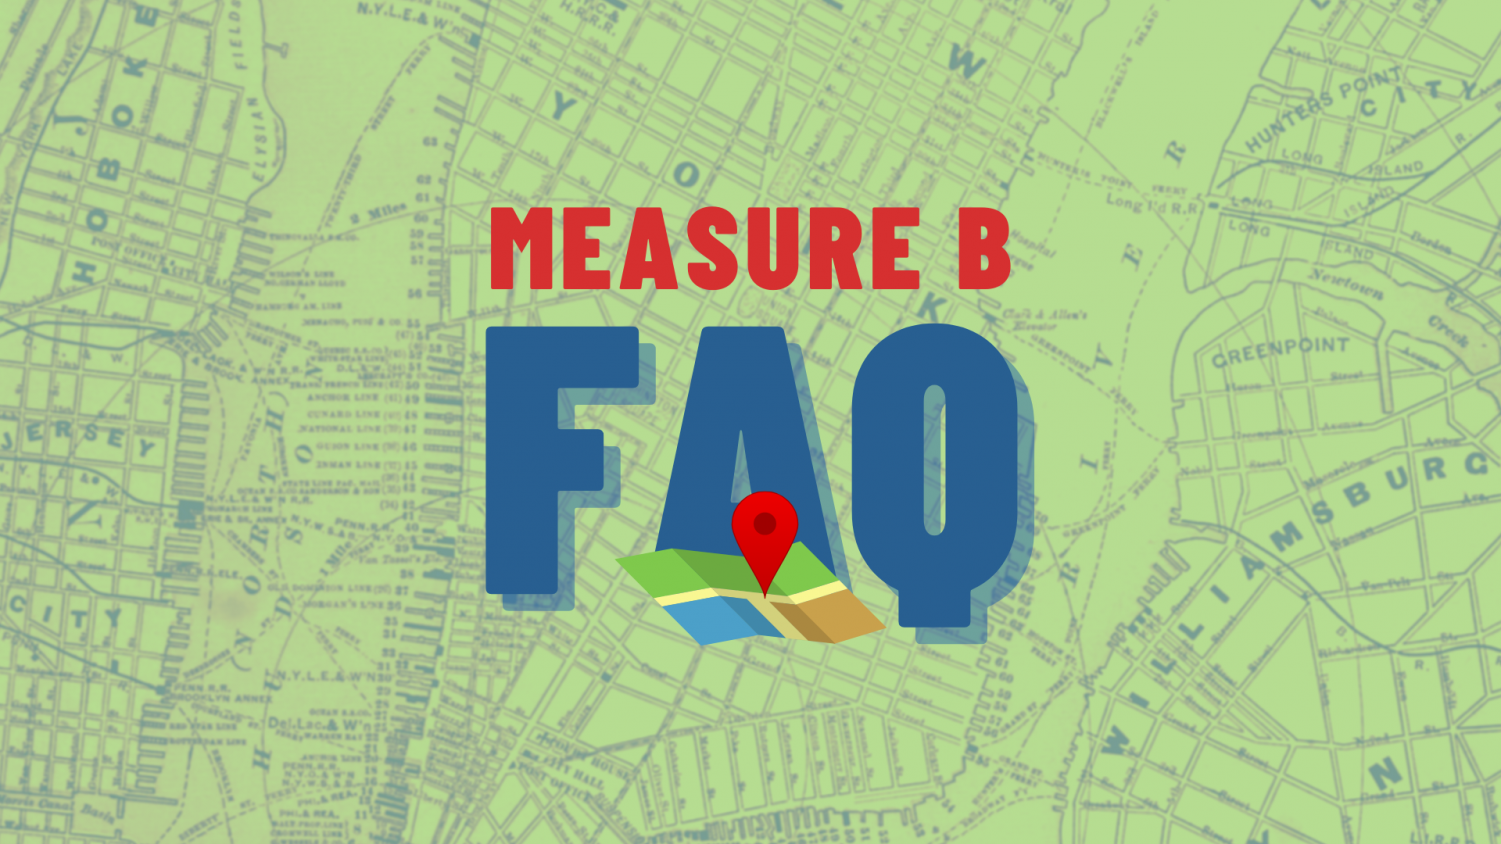 Measure B on Sacramento's Ballot this year, also called the Independent Redistricting Timeline Exception, focuses on the timeline of redistricting that the city follows after receiving population data from the 2020 census.